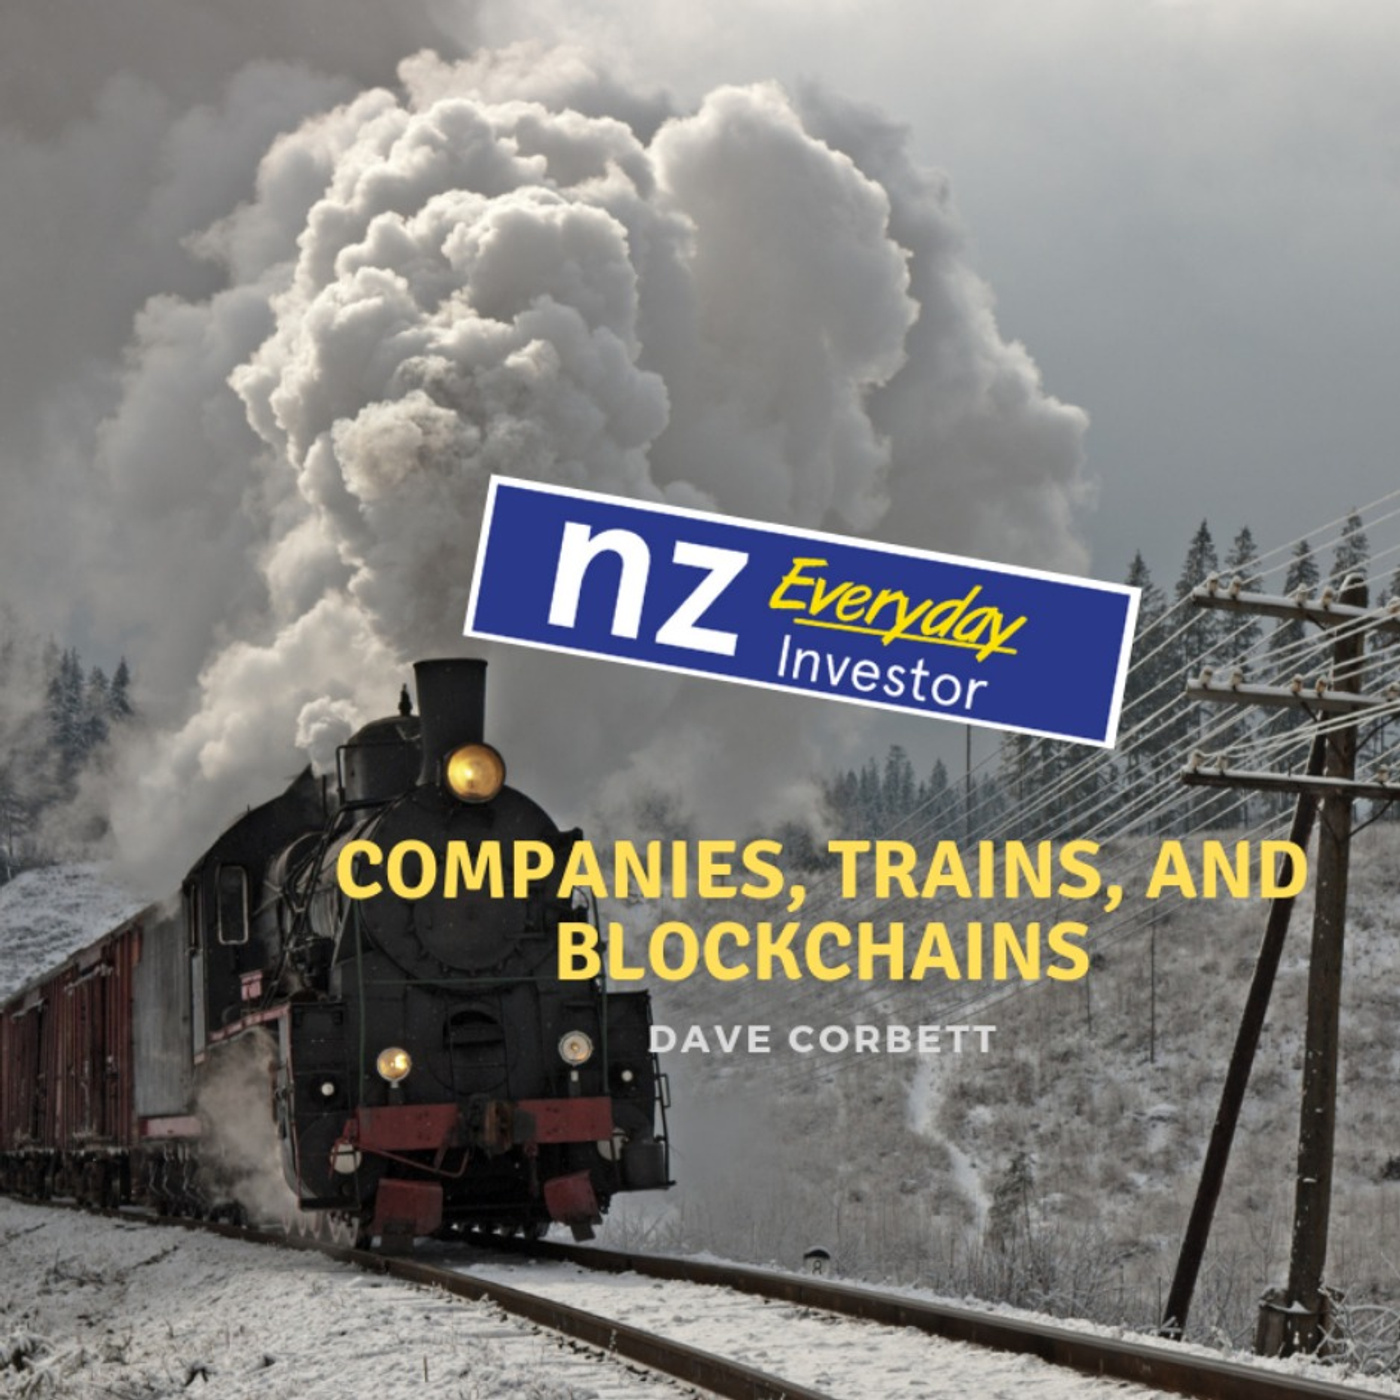 Companies, Trains and Blockchain / Dave Corbett